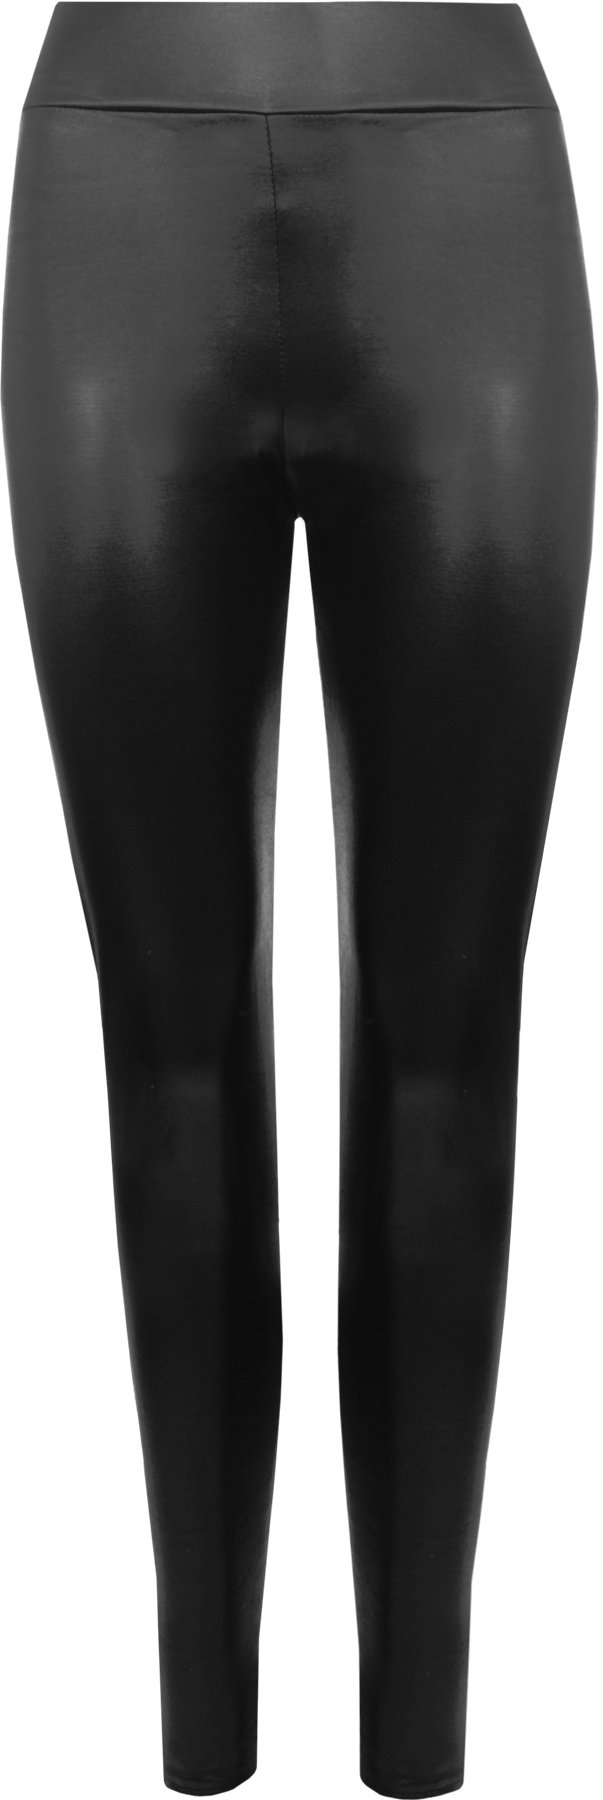 WearAll Women's Plus Full Length Shiny Wet Look Stretch Zip Leggings - Black - US 12-14 (UK 16-18)